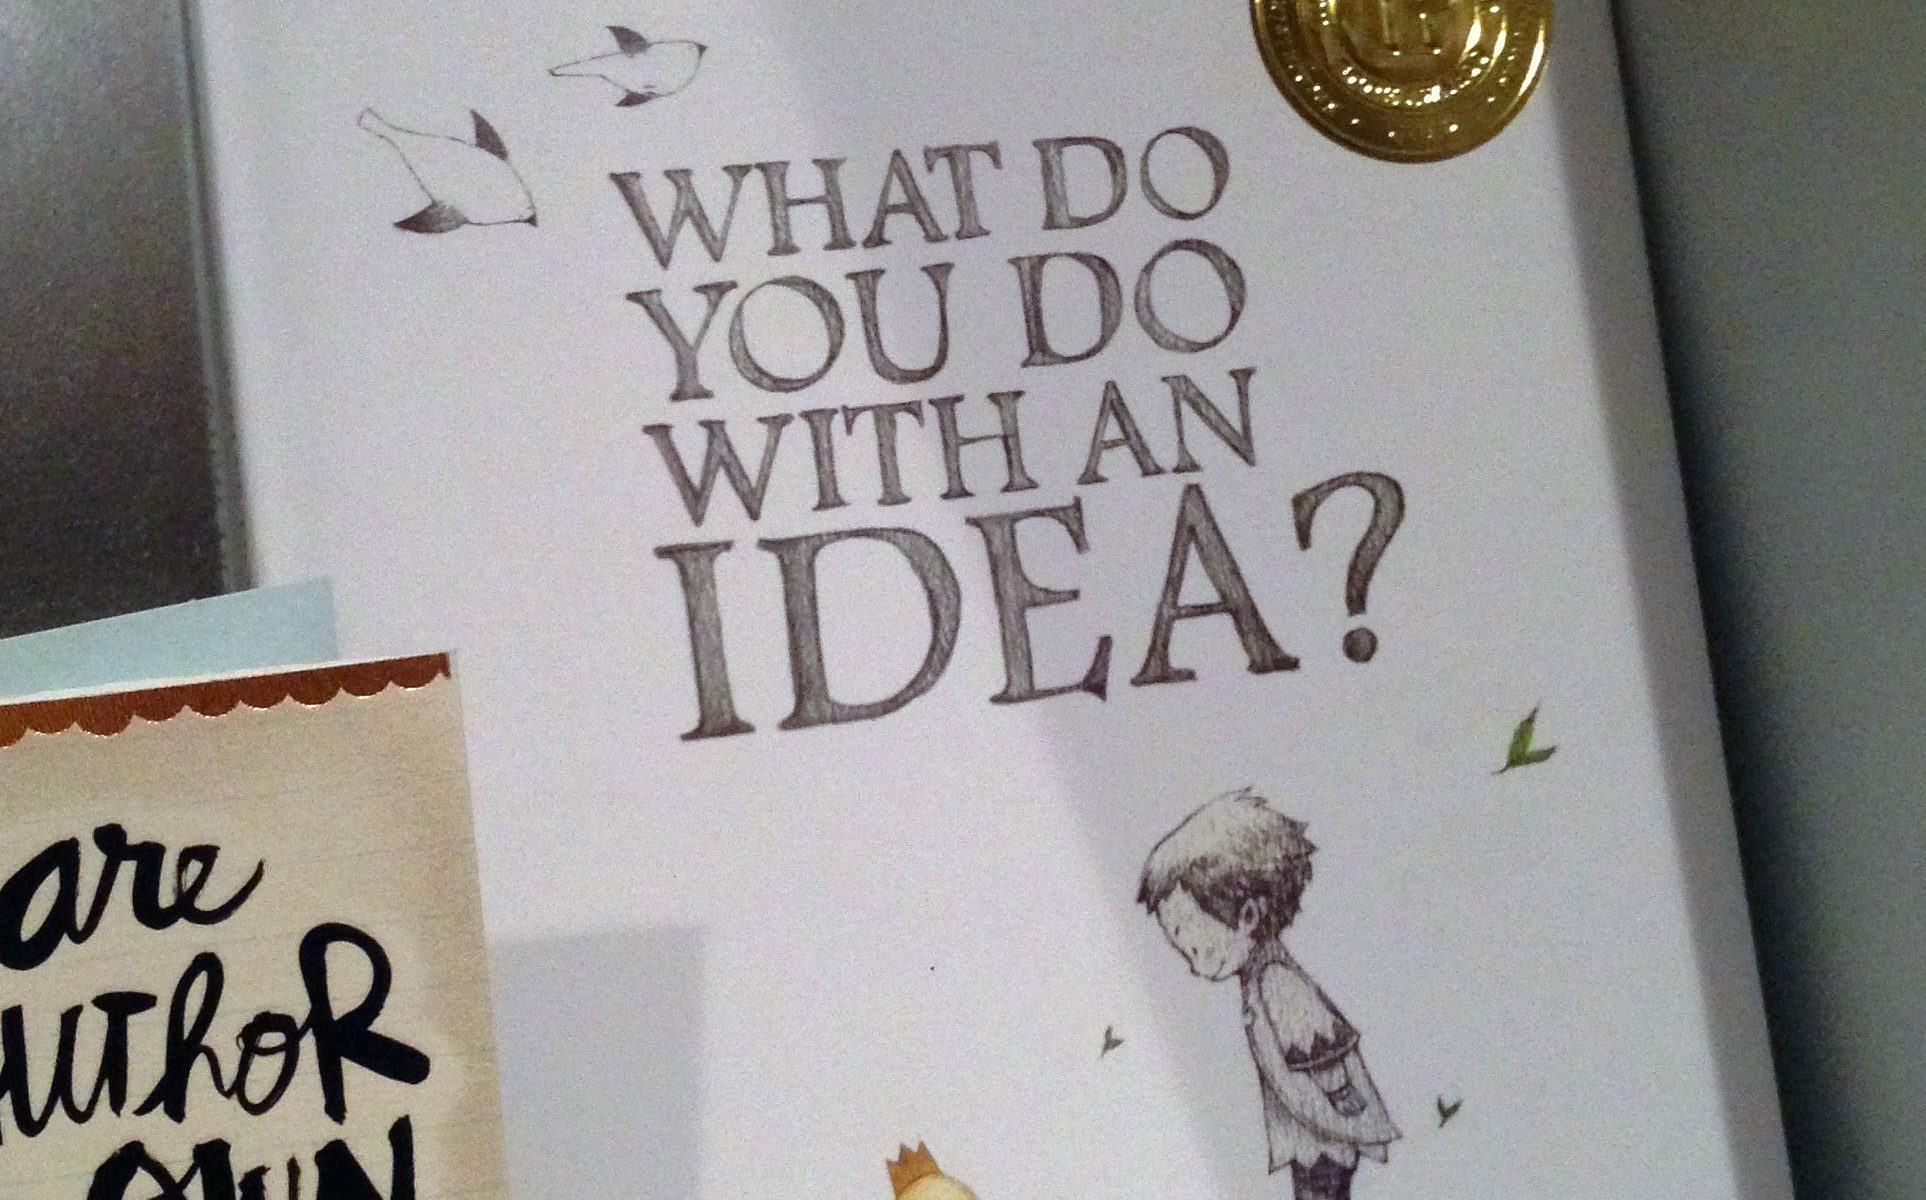 What Do You Do With An Idea by Kobi Yamada